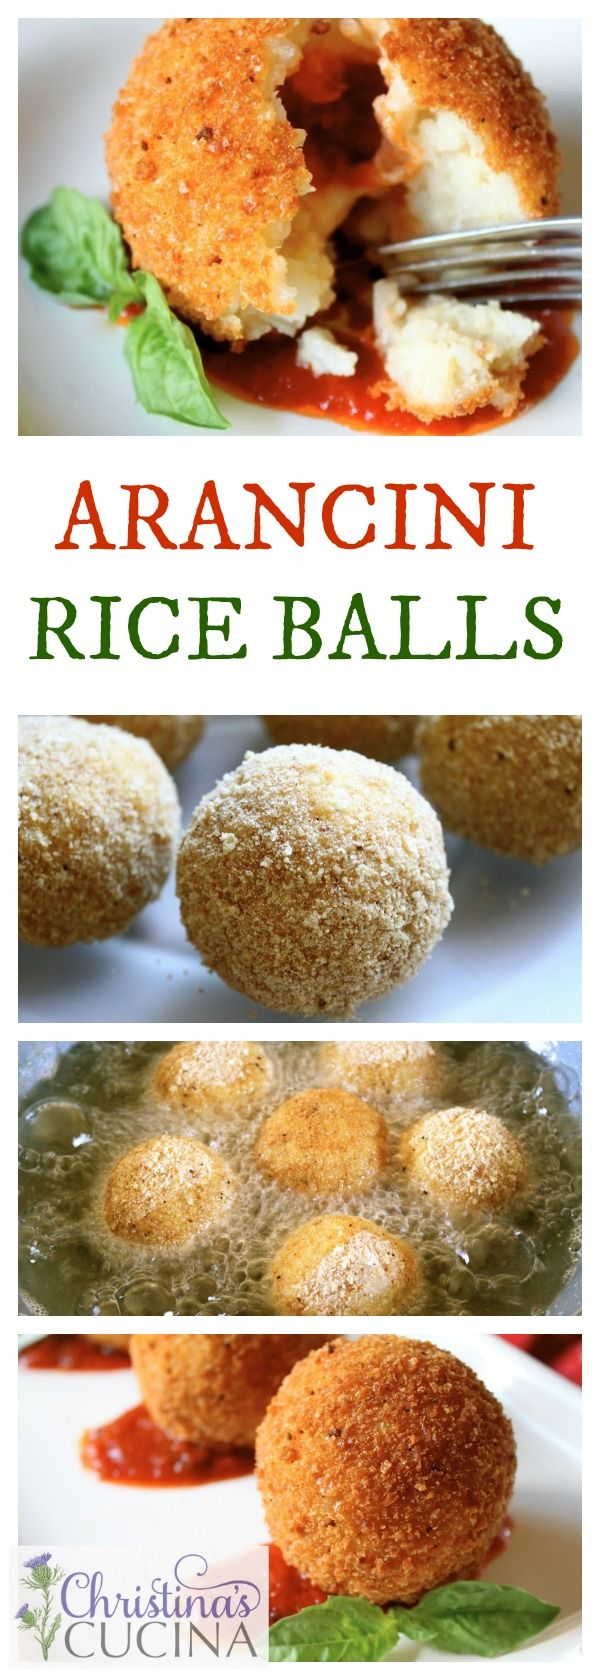 Crunch deep fried balls of Italian rice are filled with a surprise of tomato sauce and gooey mozzarella cheese!